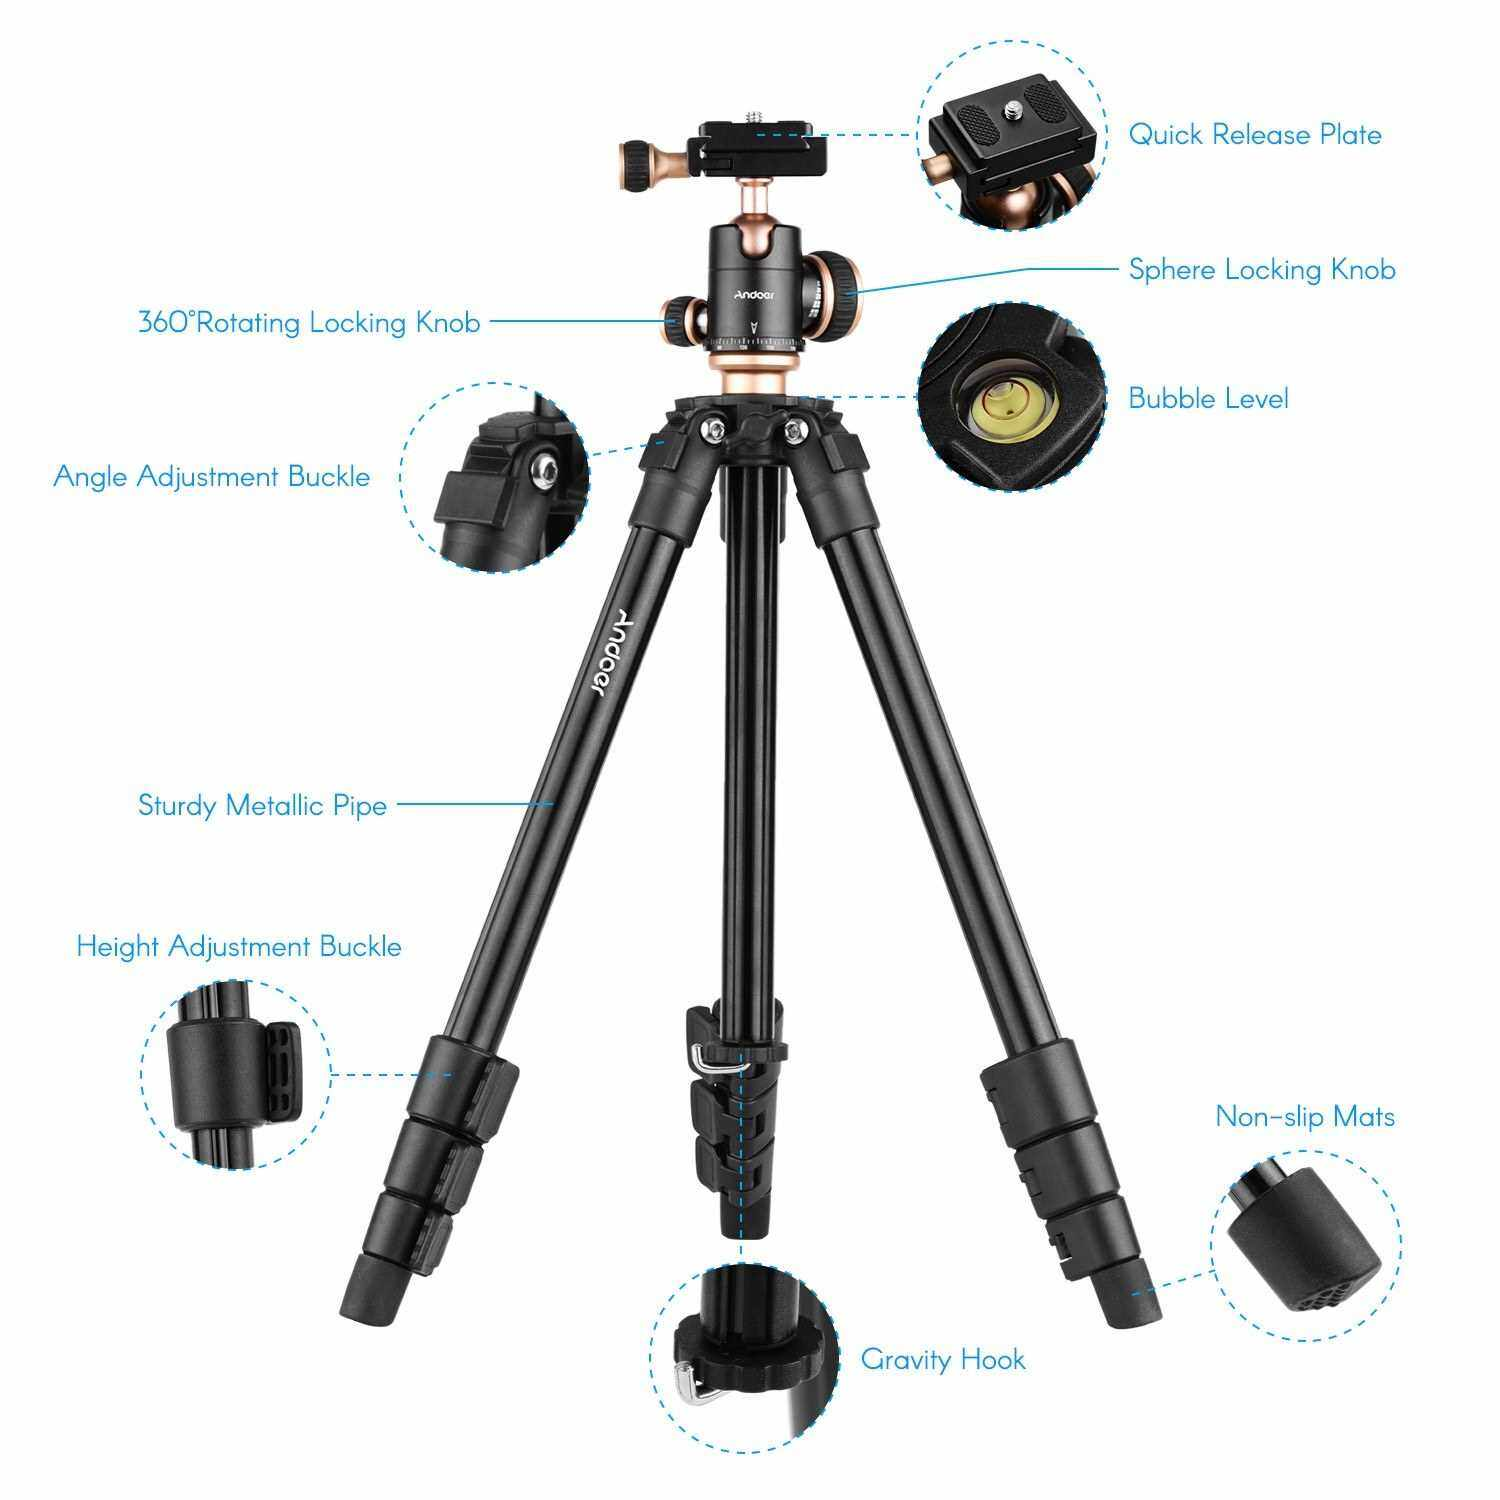 Andoer Q160SA Camera Tripod Complete Tripods with Panoramic Ballhead Bubble Level Adjustable Height Portable Travel Tripod for DSLR Digital Cameras Camcorder Mini Projector Compatible with Canon Nikon Sony (Standard)